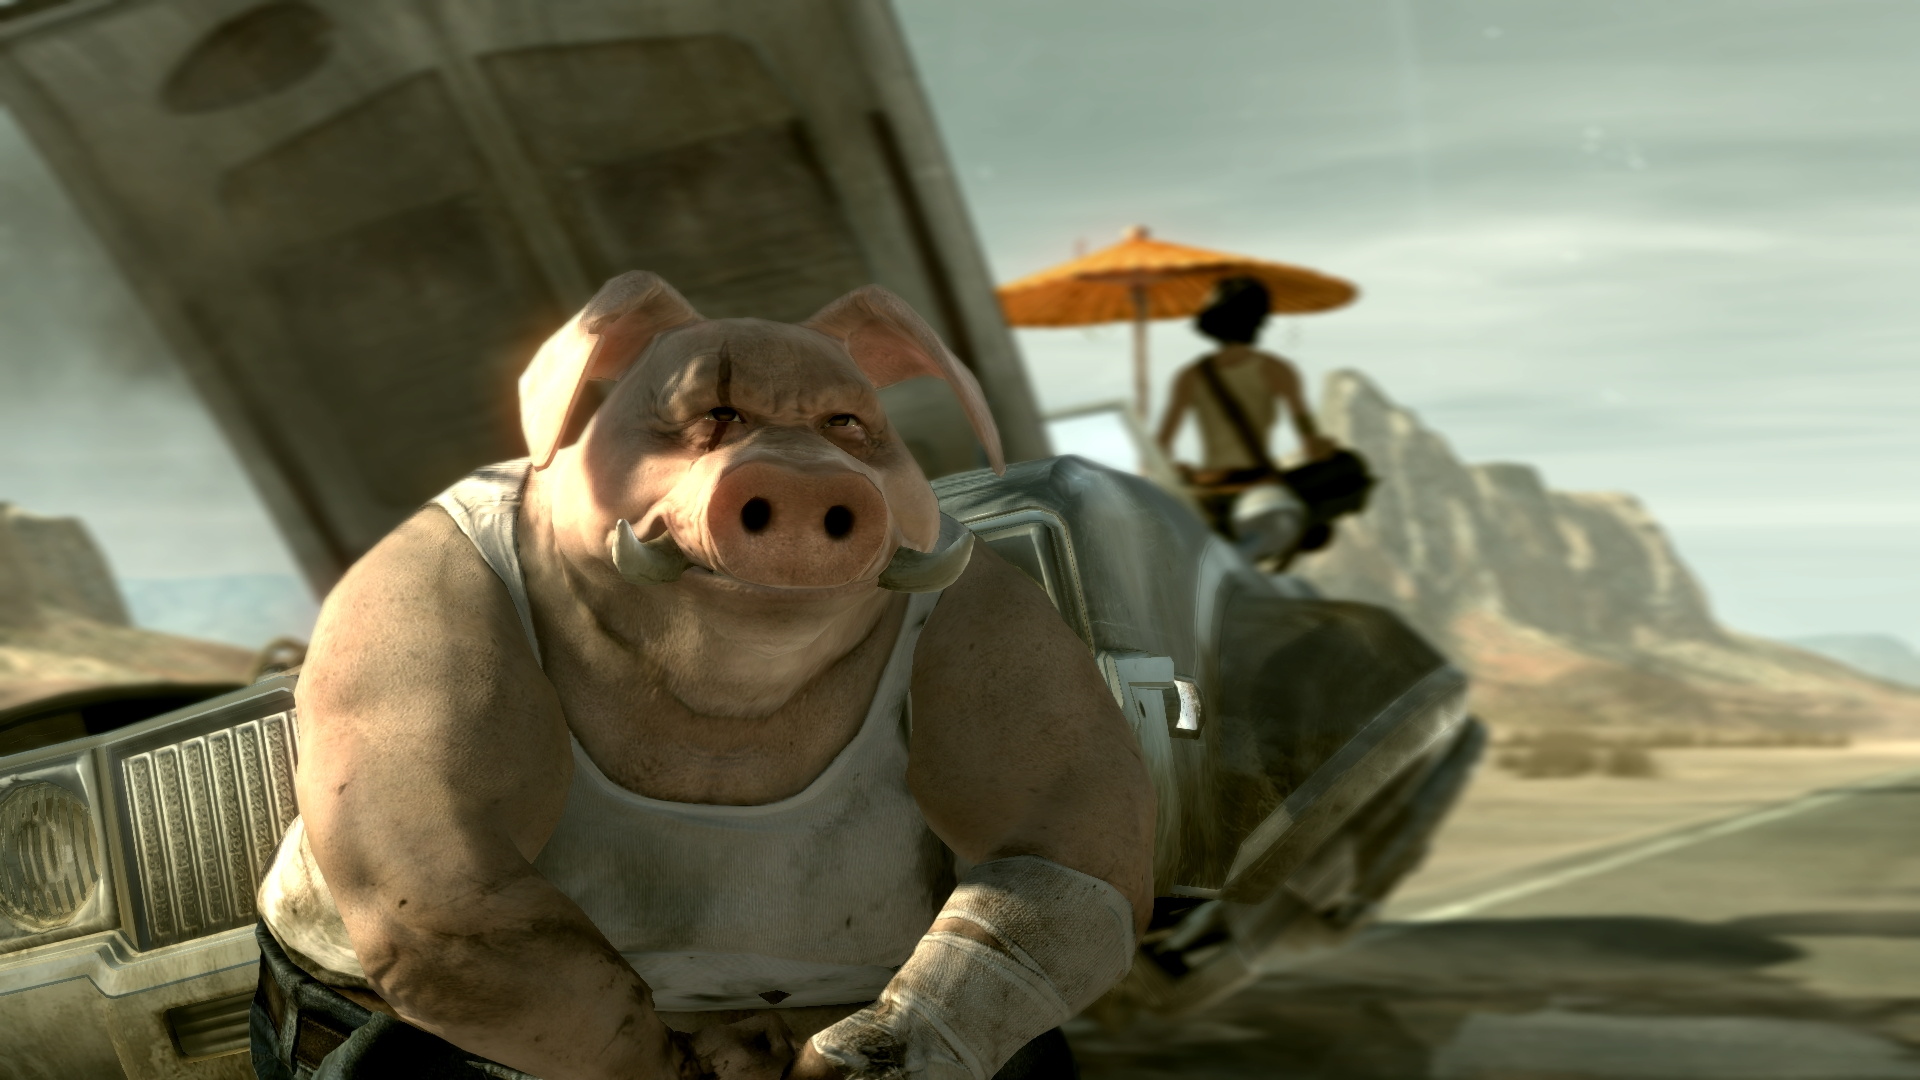 mira-la-demo-tecnica-beyond-good-and-evil-2-frikigamers.com